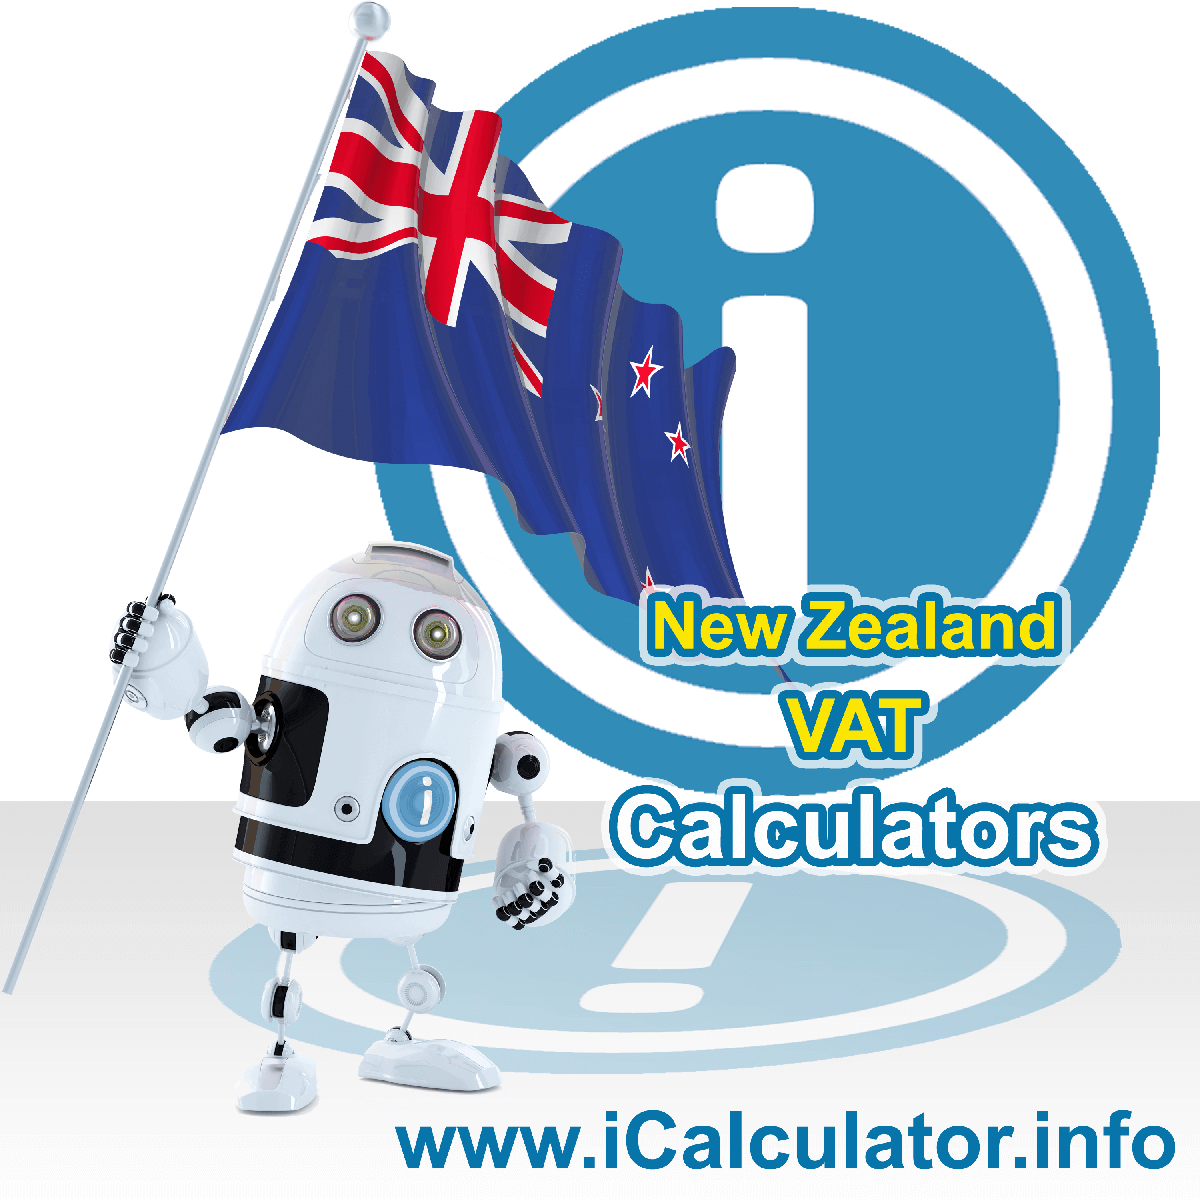 New Zealand VAT Calculator. This image shows the New Zealand flag and information relating to the VAT formula used for calculating Value Added Tax in New Zealand using the New Zealand VAT Calculator in 2020